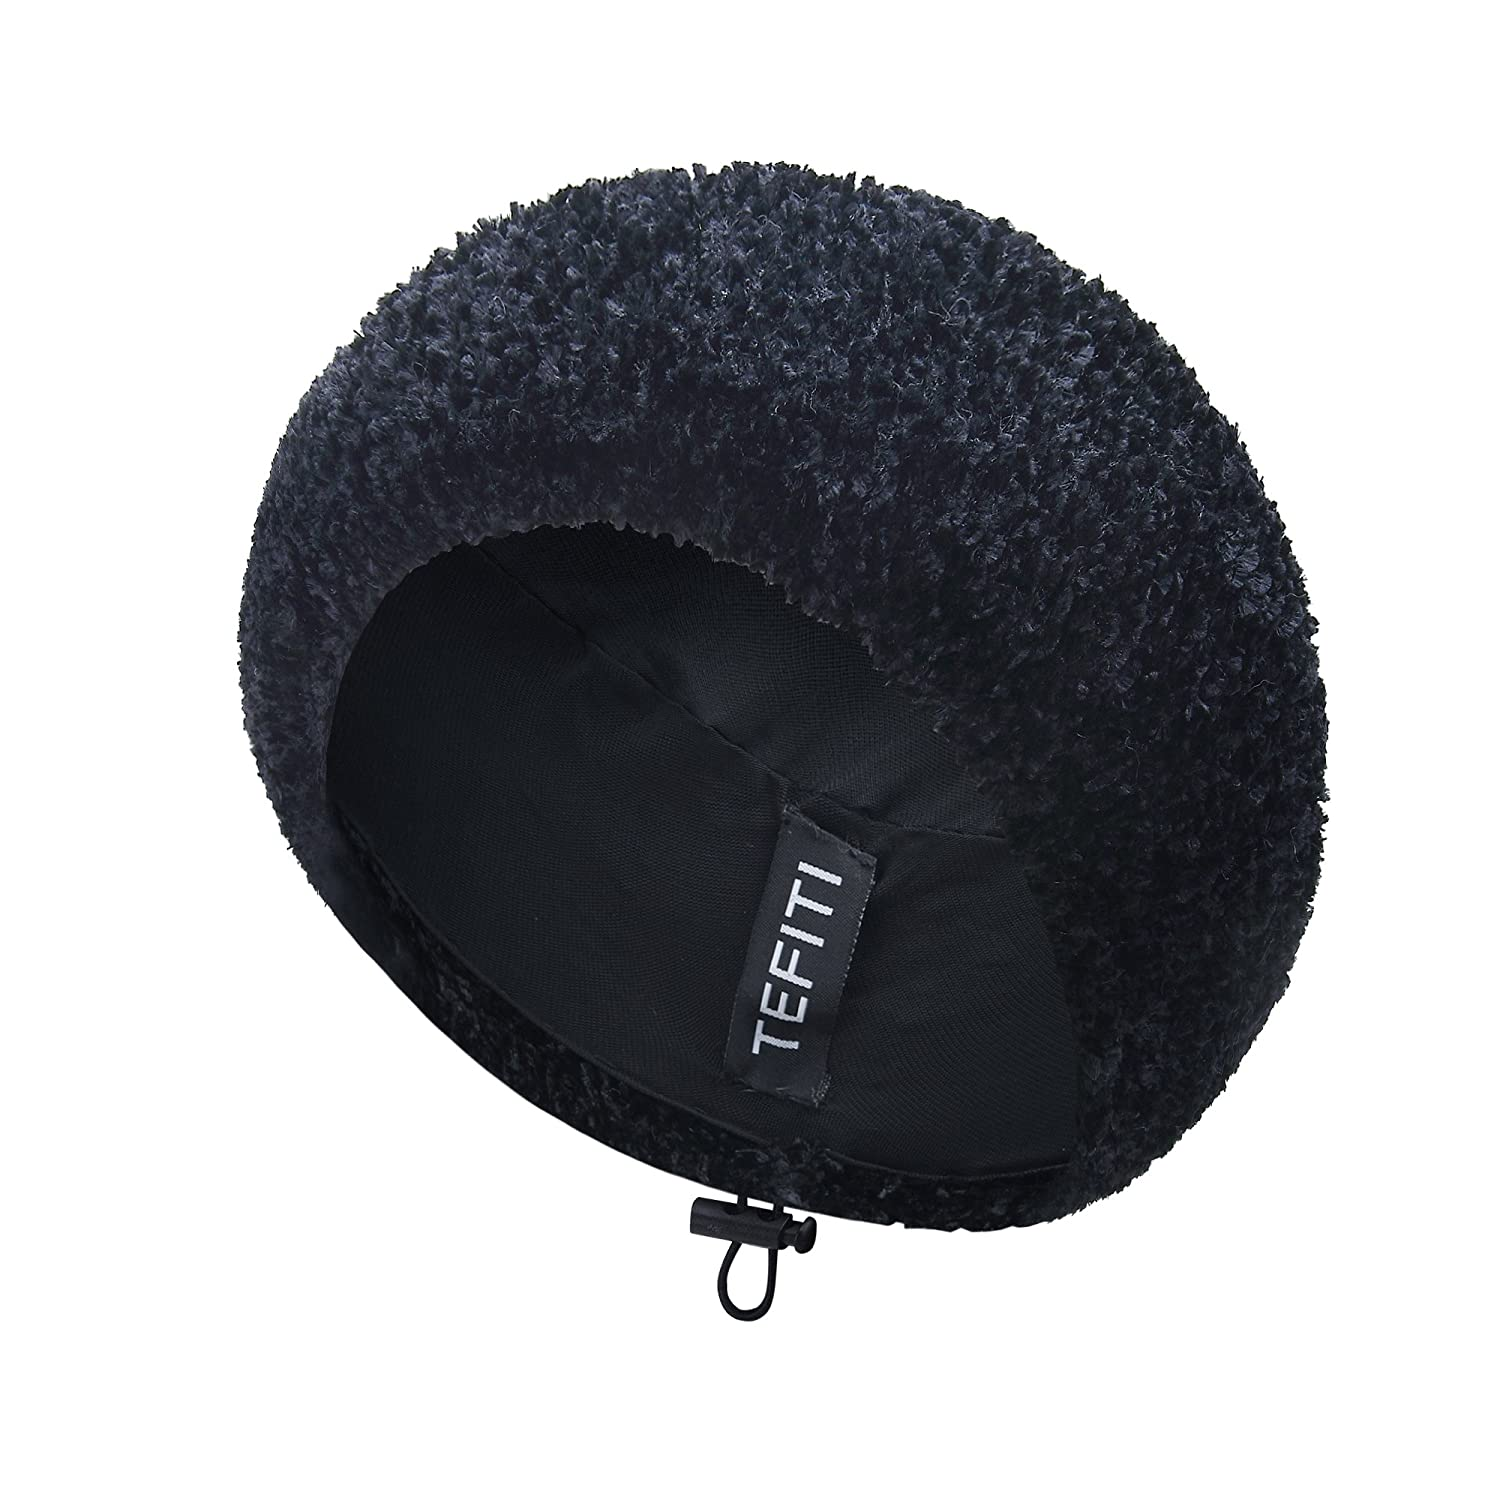 6b494d40 TEFITI Adjustable Chenille Snoods Lightweight Knit Beanie Hat Headcover for  Women (Black) at Amazon Women's Clothing store: